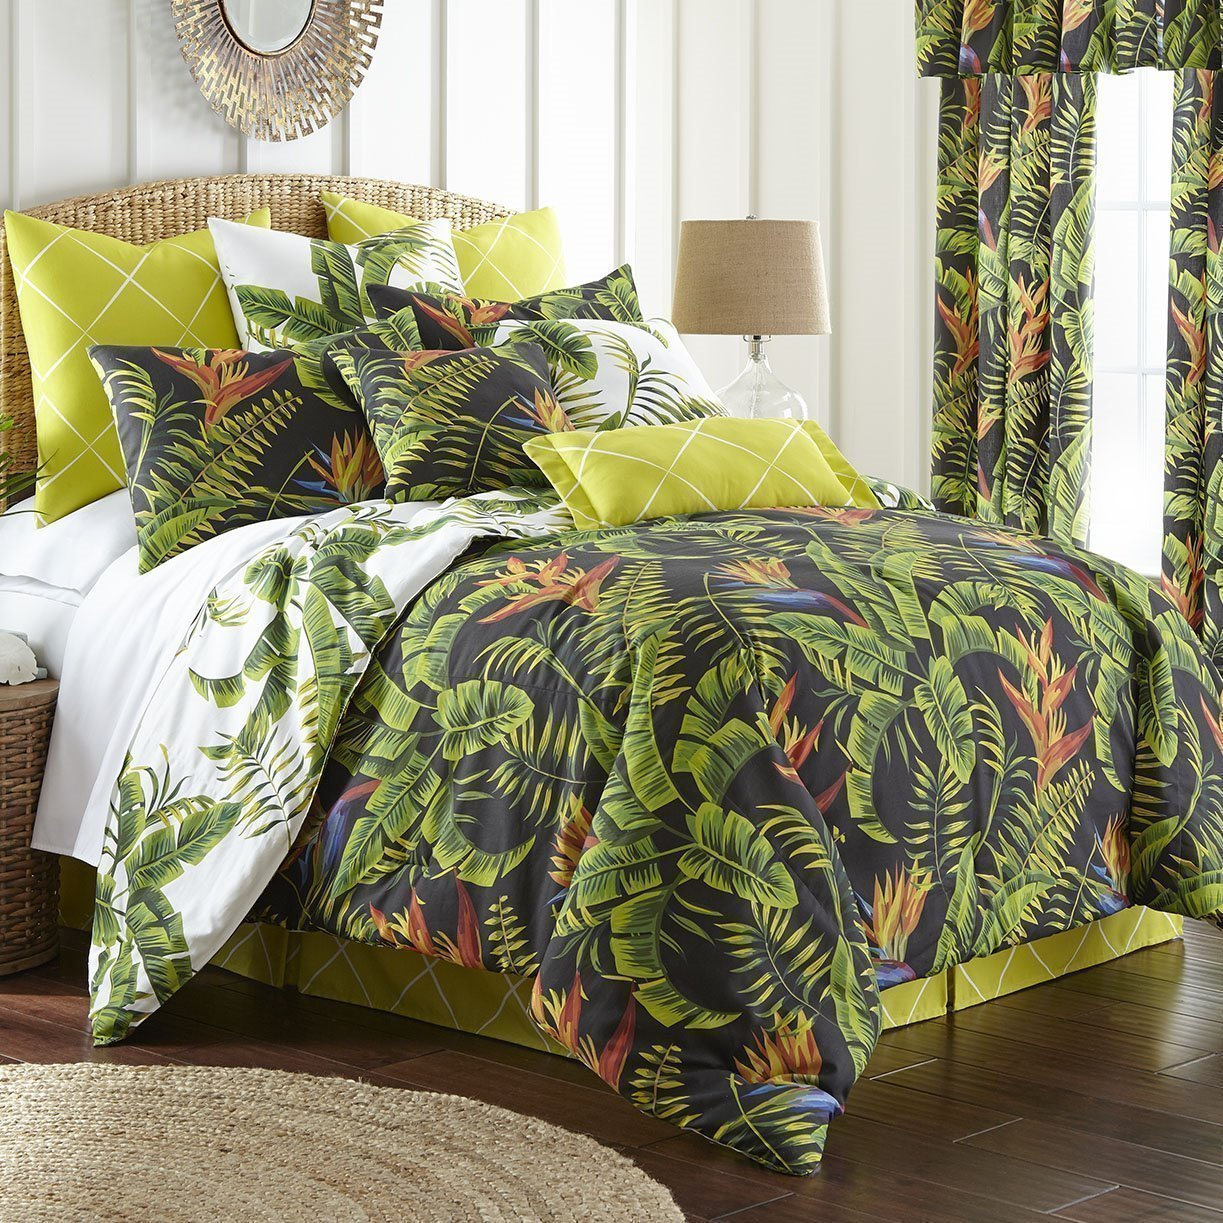 Flower Of Paradise Comforter Set Reversible Super King 114 X98 2 Pillow Shams